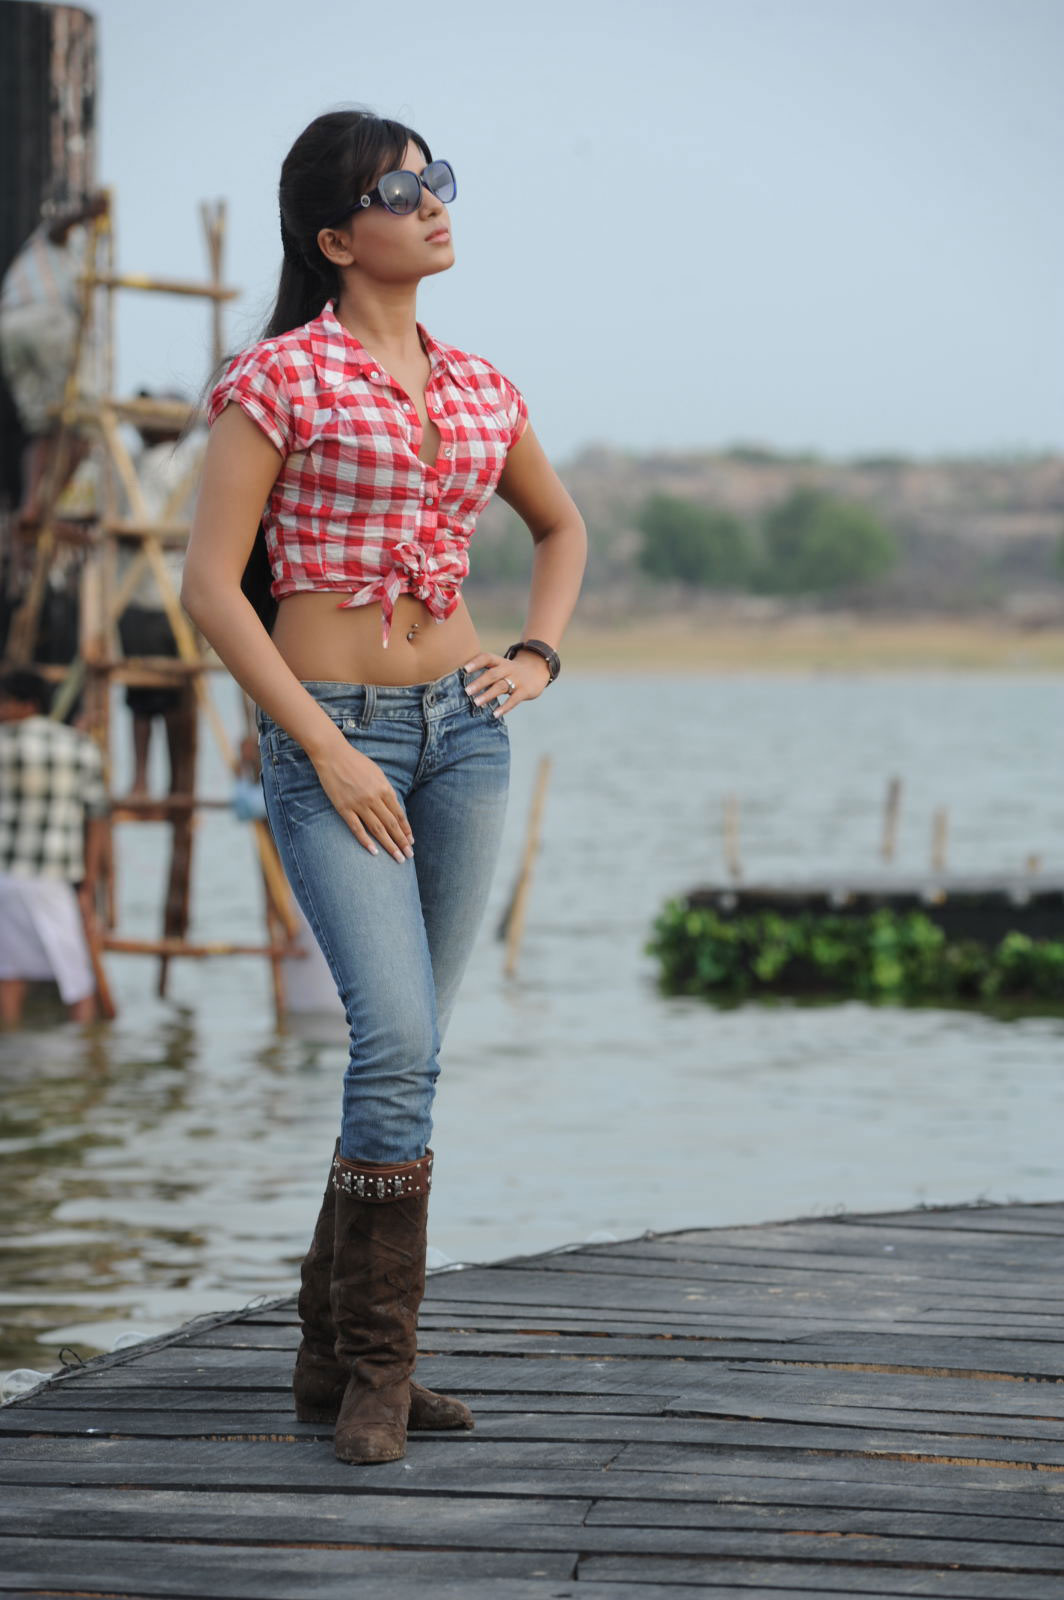 Samantha in jeans wearing a red and white cropped shirt. - SAMANTHA - jeans and half shirt= HOT GIRL